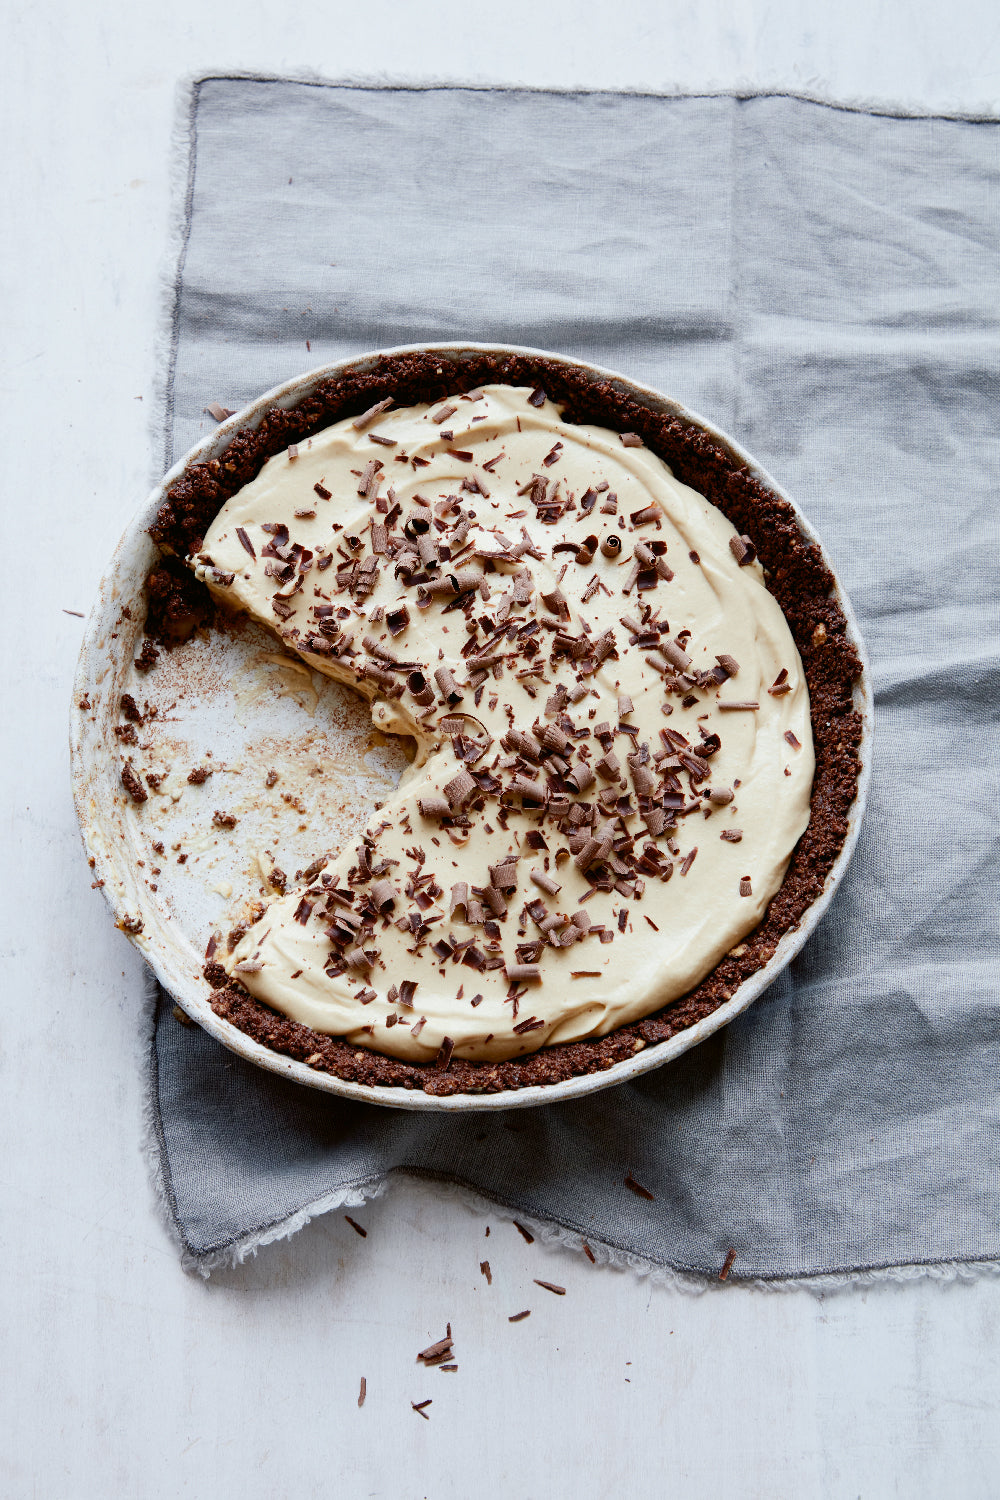 Butterscotch banoffee pie recipe